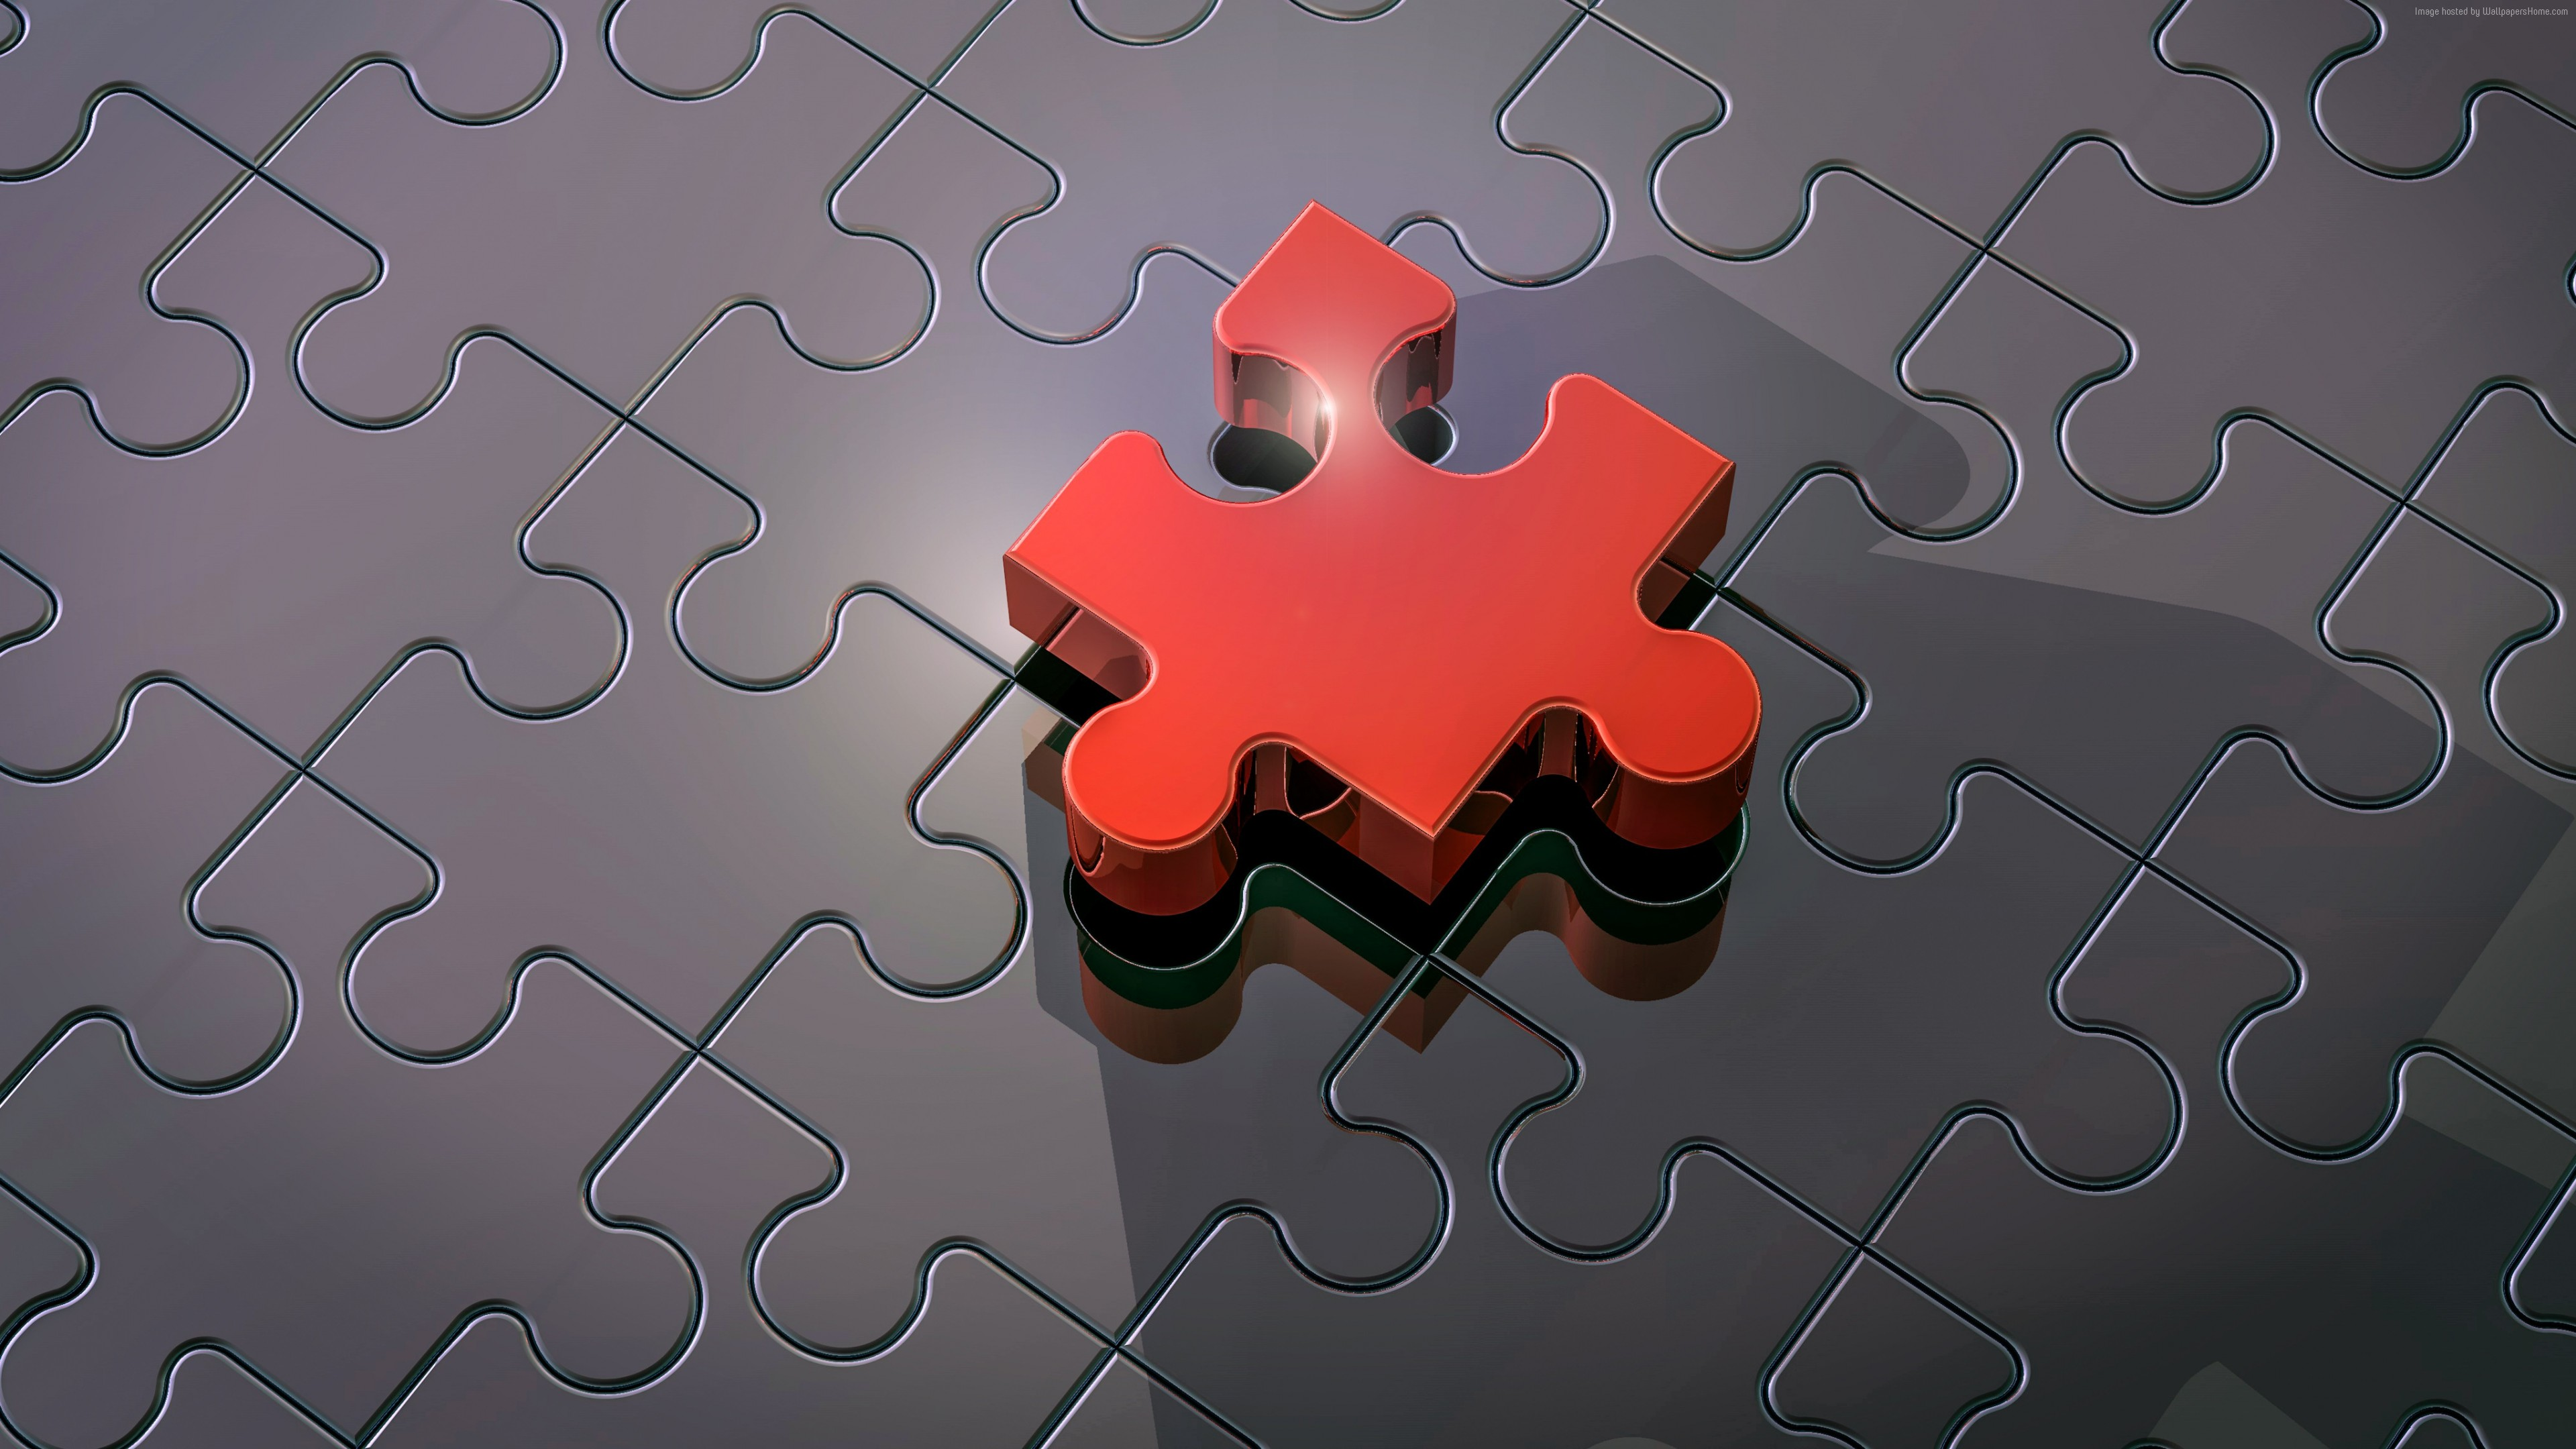 Wallpaper Puzzle, 3D, red, 4K, Abstract